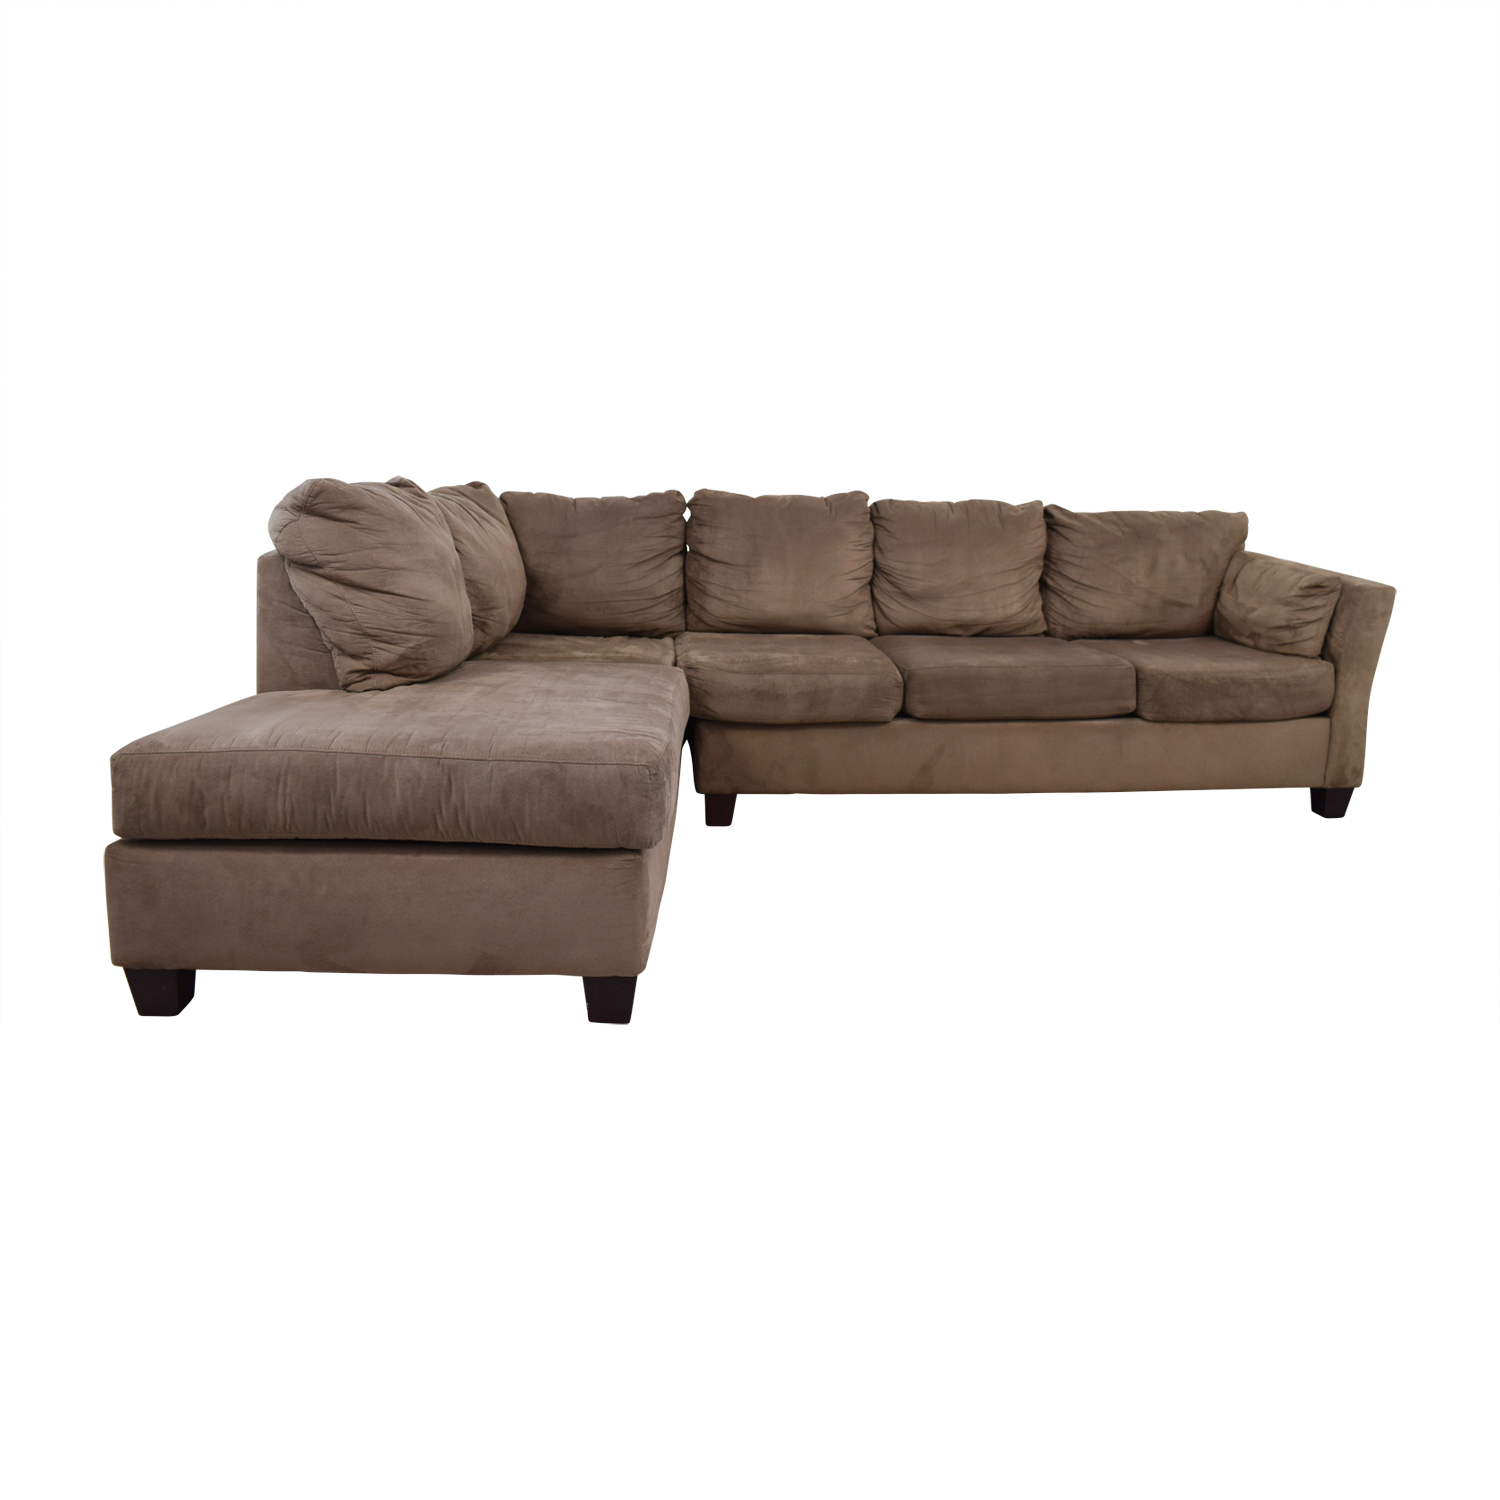 52 Off Bob S Furniture Brown Microfiber Sectional Sofas